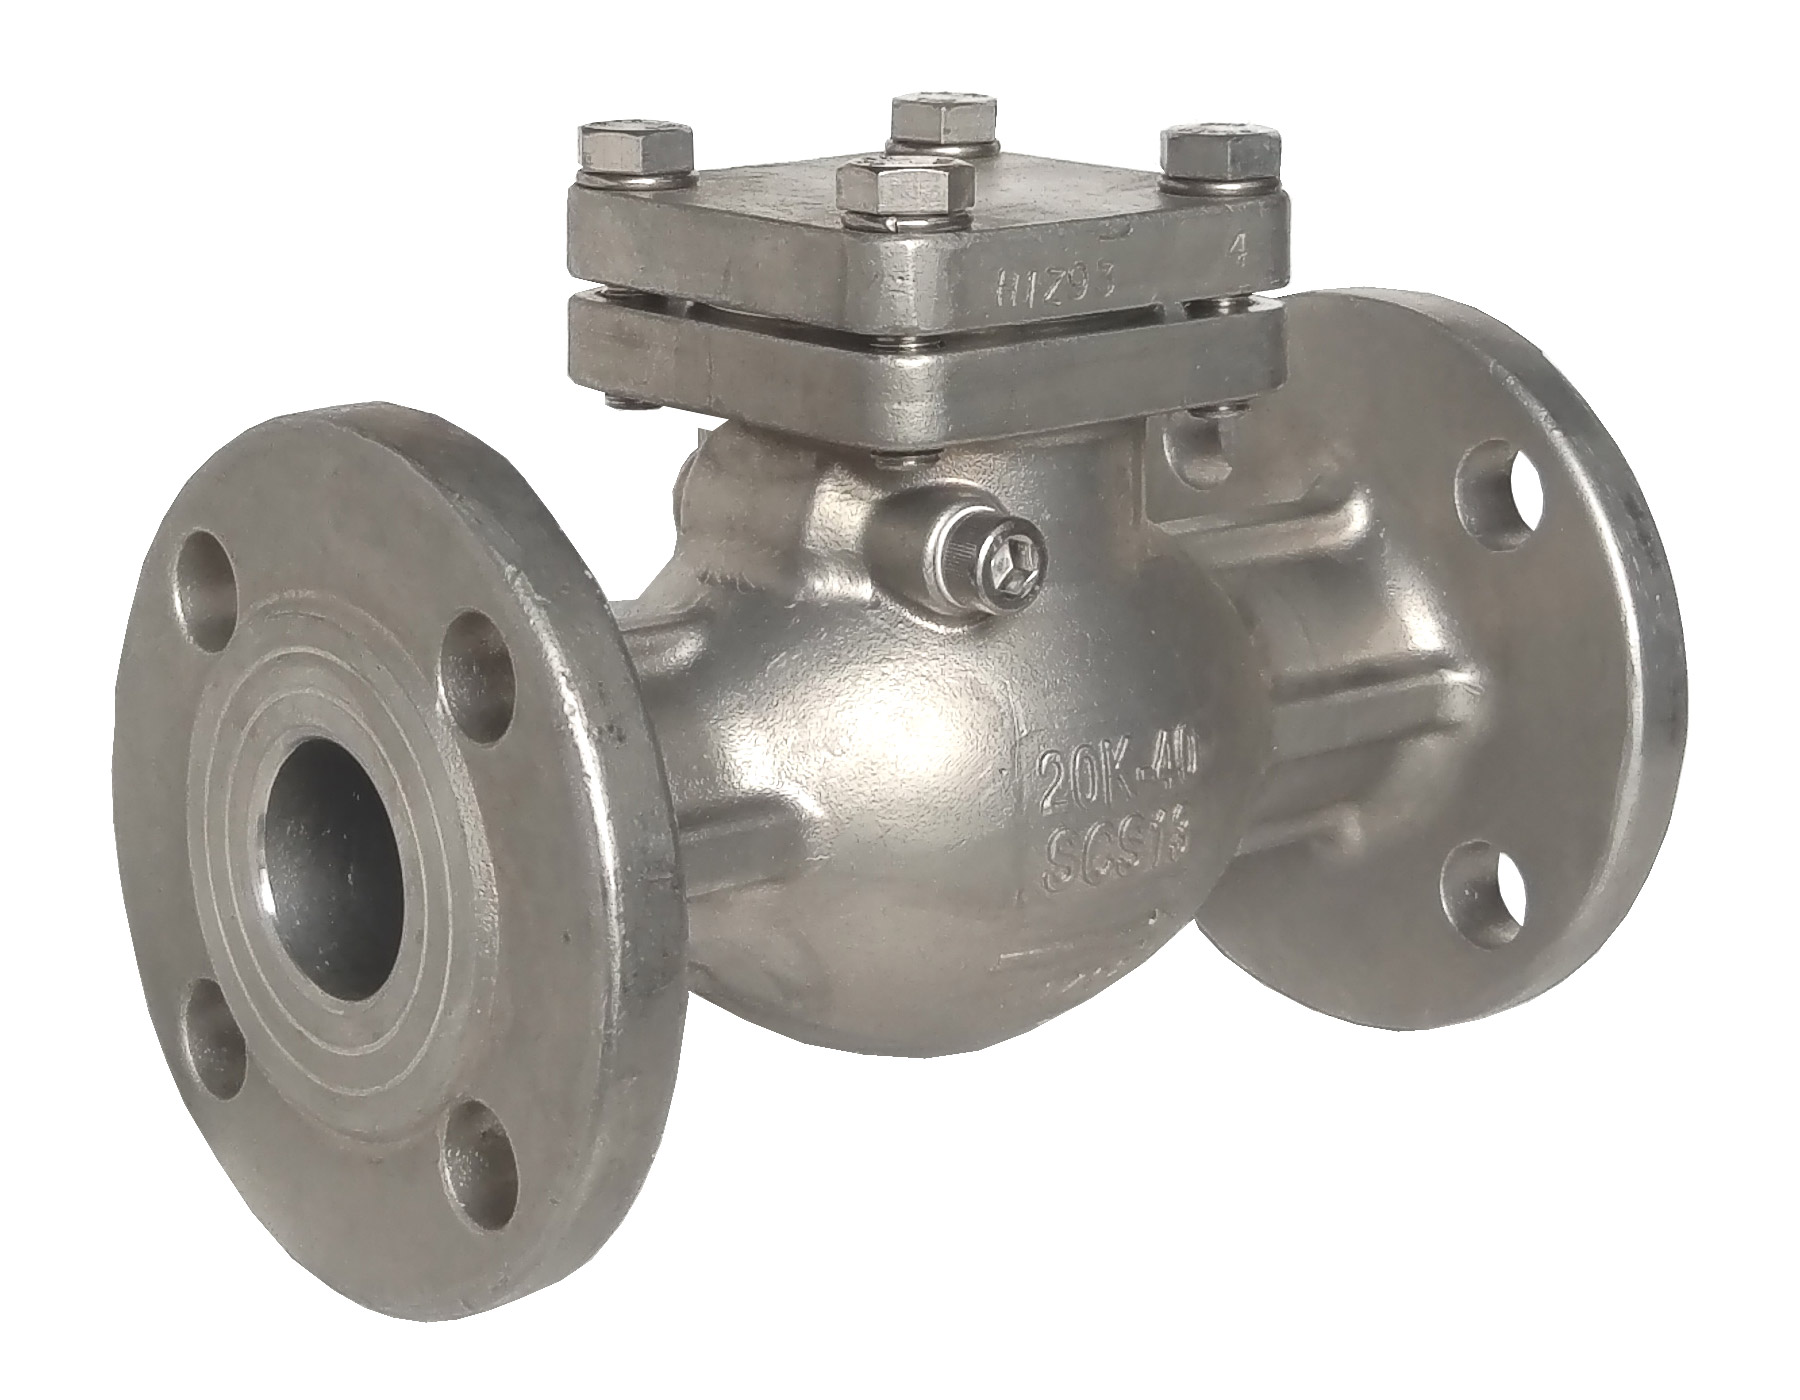 FLANGE END JIS 20K SWING CHECK VALVE